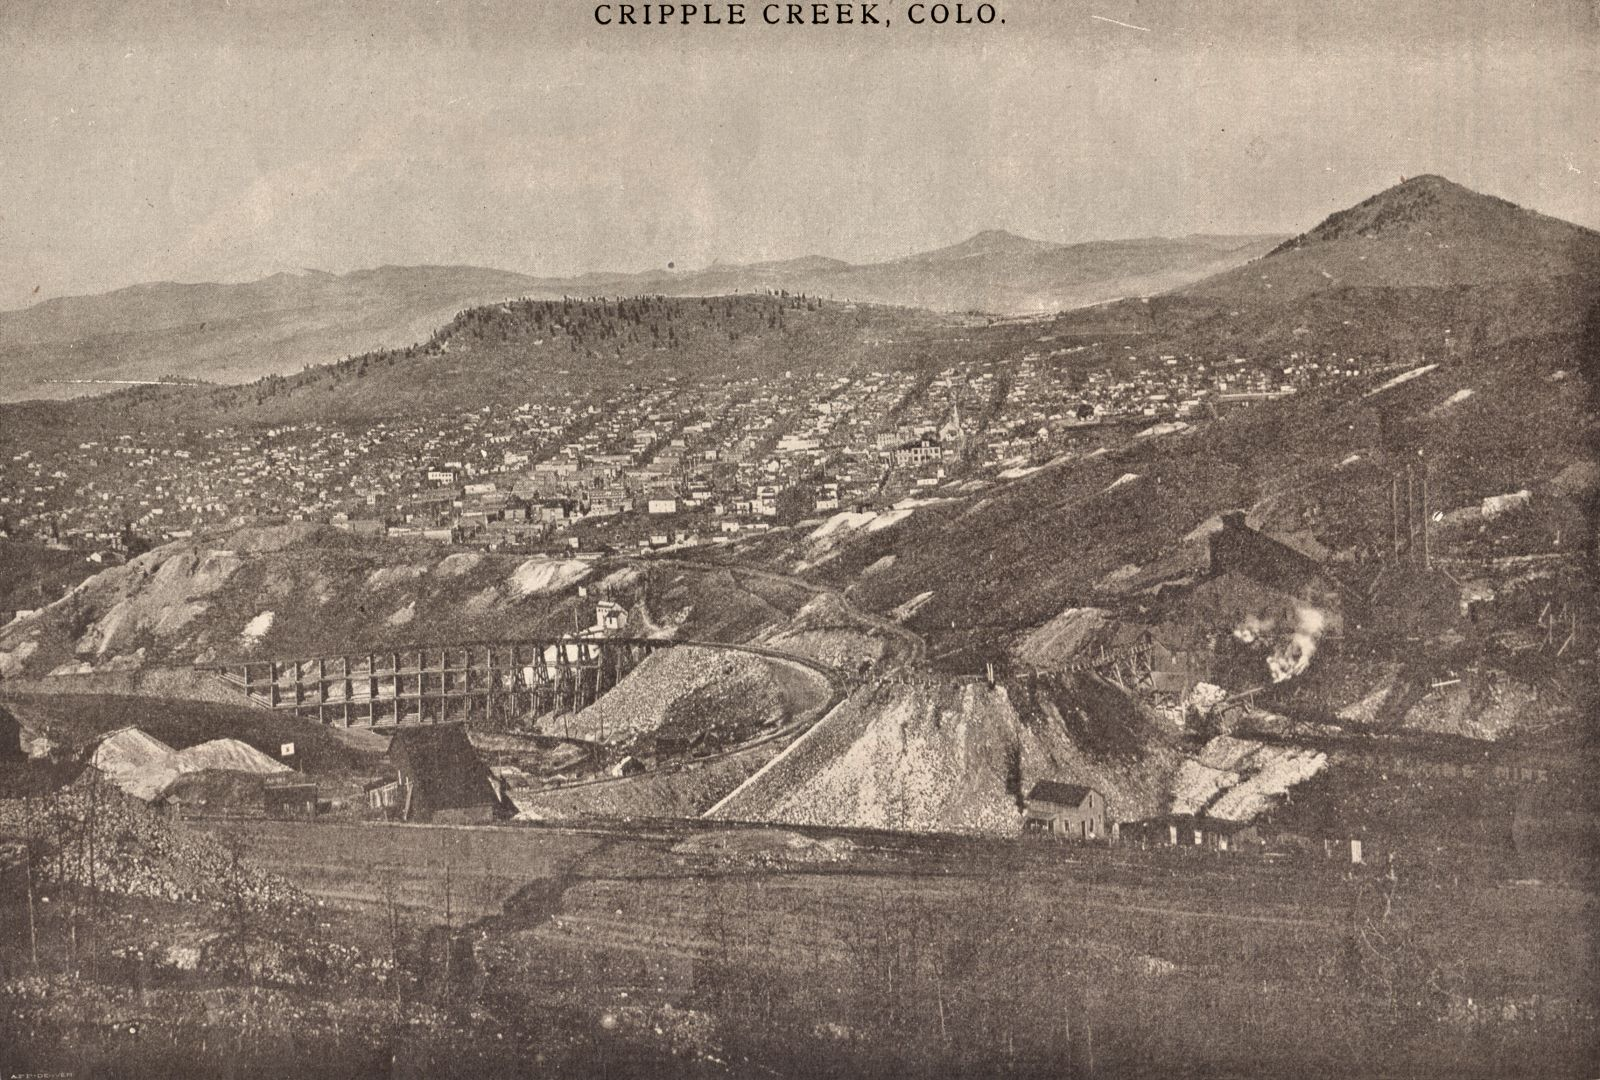 This view across Poverty Gulch, towards the town of Cripple Creek, is photographed on Gold Hill a little uphill from the C.O.D. mine. The Short Line main line is climbing the hill via the curved trestle seen on left-hand side, and the original High Line electric trolley line is partly seen on the left side of the railroad curve, after gone through the trestle on its big climb up Gold Hill. * The Reno Mine is seen beyond the Short Line trestle, almost center bottom/top and about 2/5 in from left-hand side. Near the upper end/right-hand side of the Short Line trestle. * The old shaft house of the C.O.D. mine is seen from behind, about 1/3 up from bottom and a bit more than 1/3 in from left-hand side. * The Gold King, or the El Paso Gold King Mine, is seen center bottom/top about 1/5 in from right-hand side, in the darker shades of this image sadly.